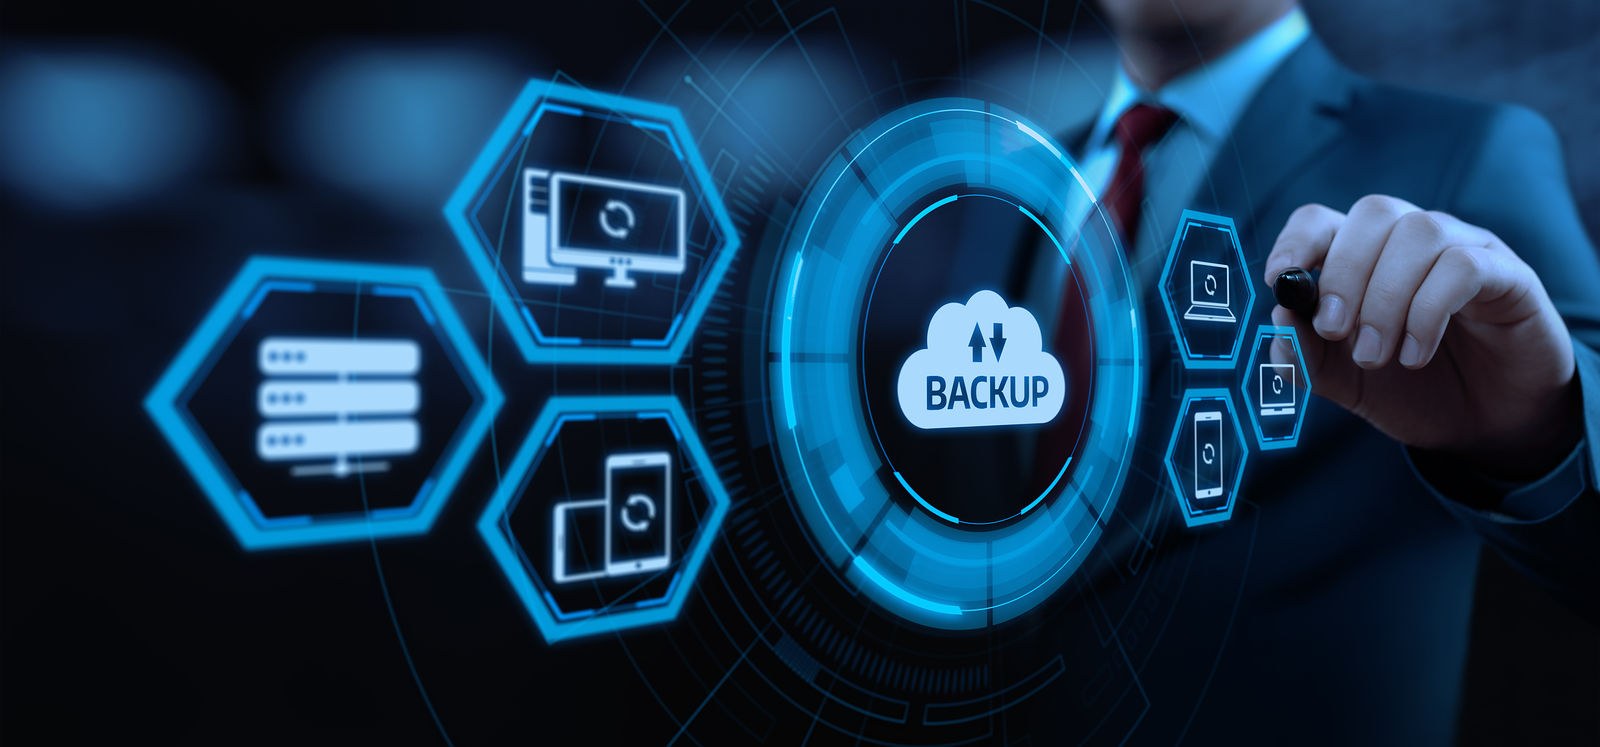 How to Create a Backup of Your Emails